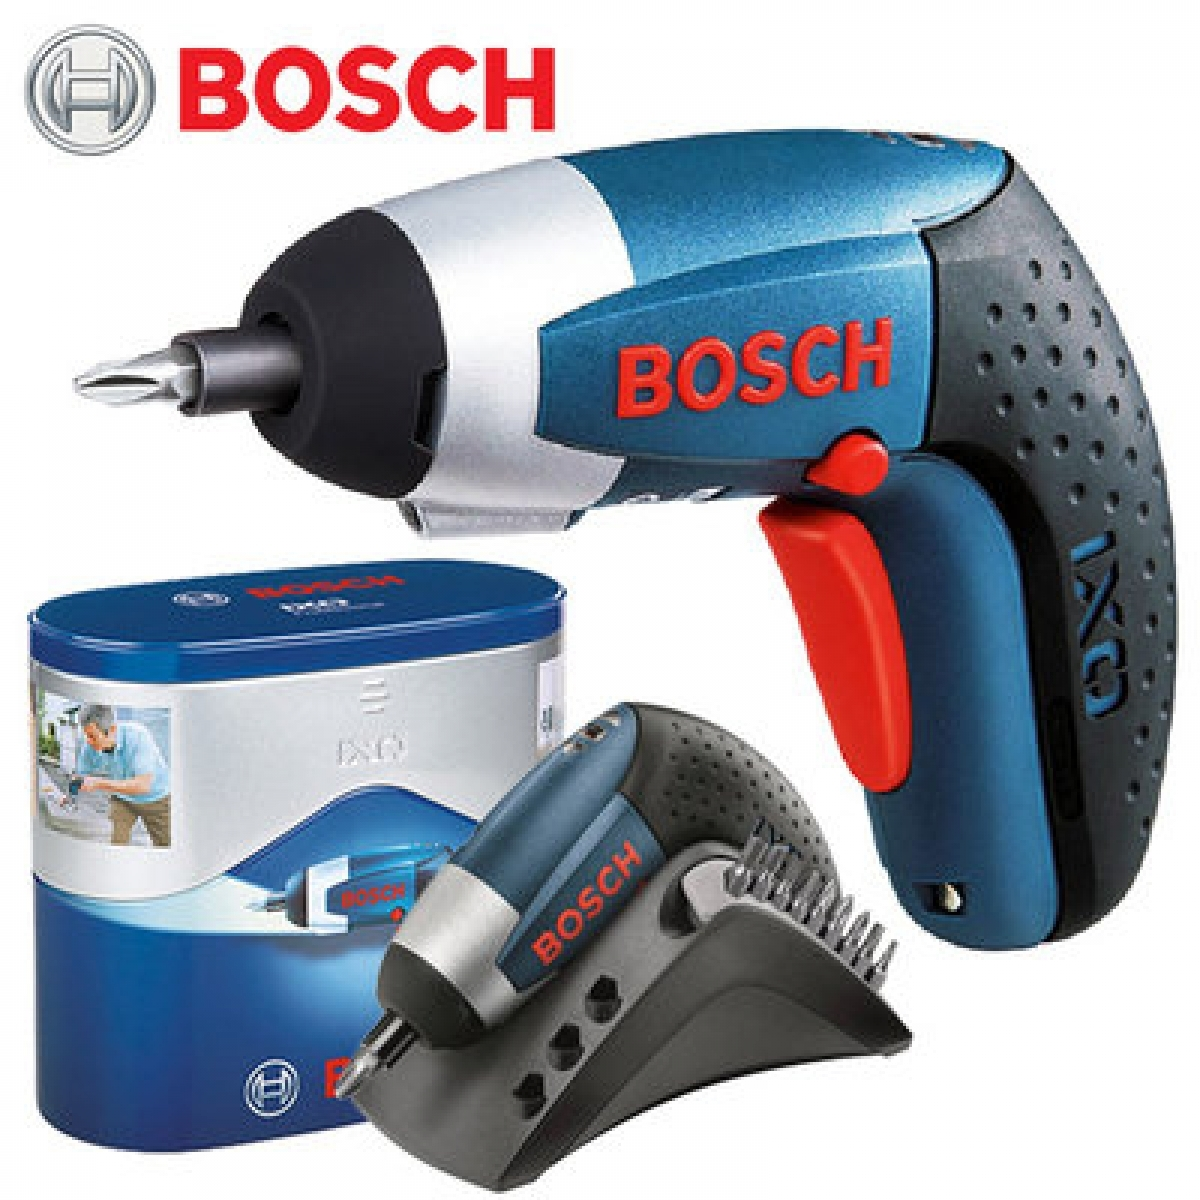 bosch ixo 3 6v cordless screwdriver my power tools. Black Bedroom Furniture Sets. Home Design Ideas